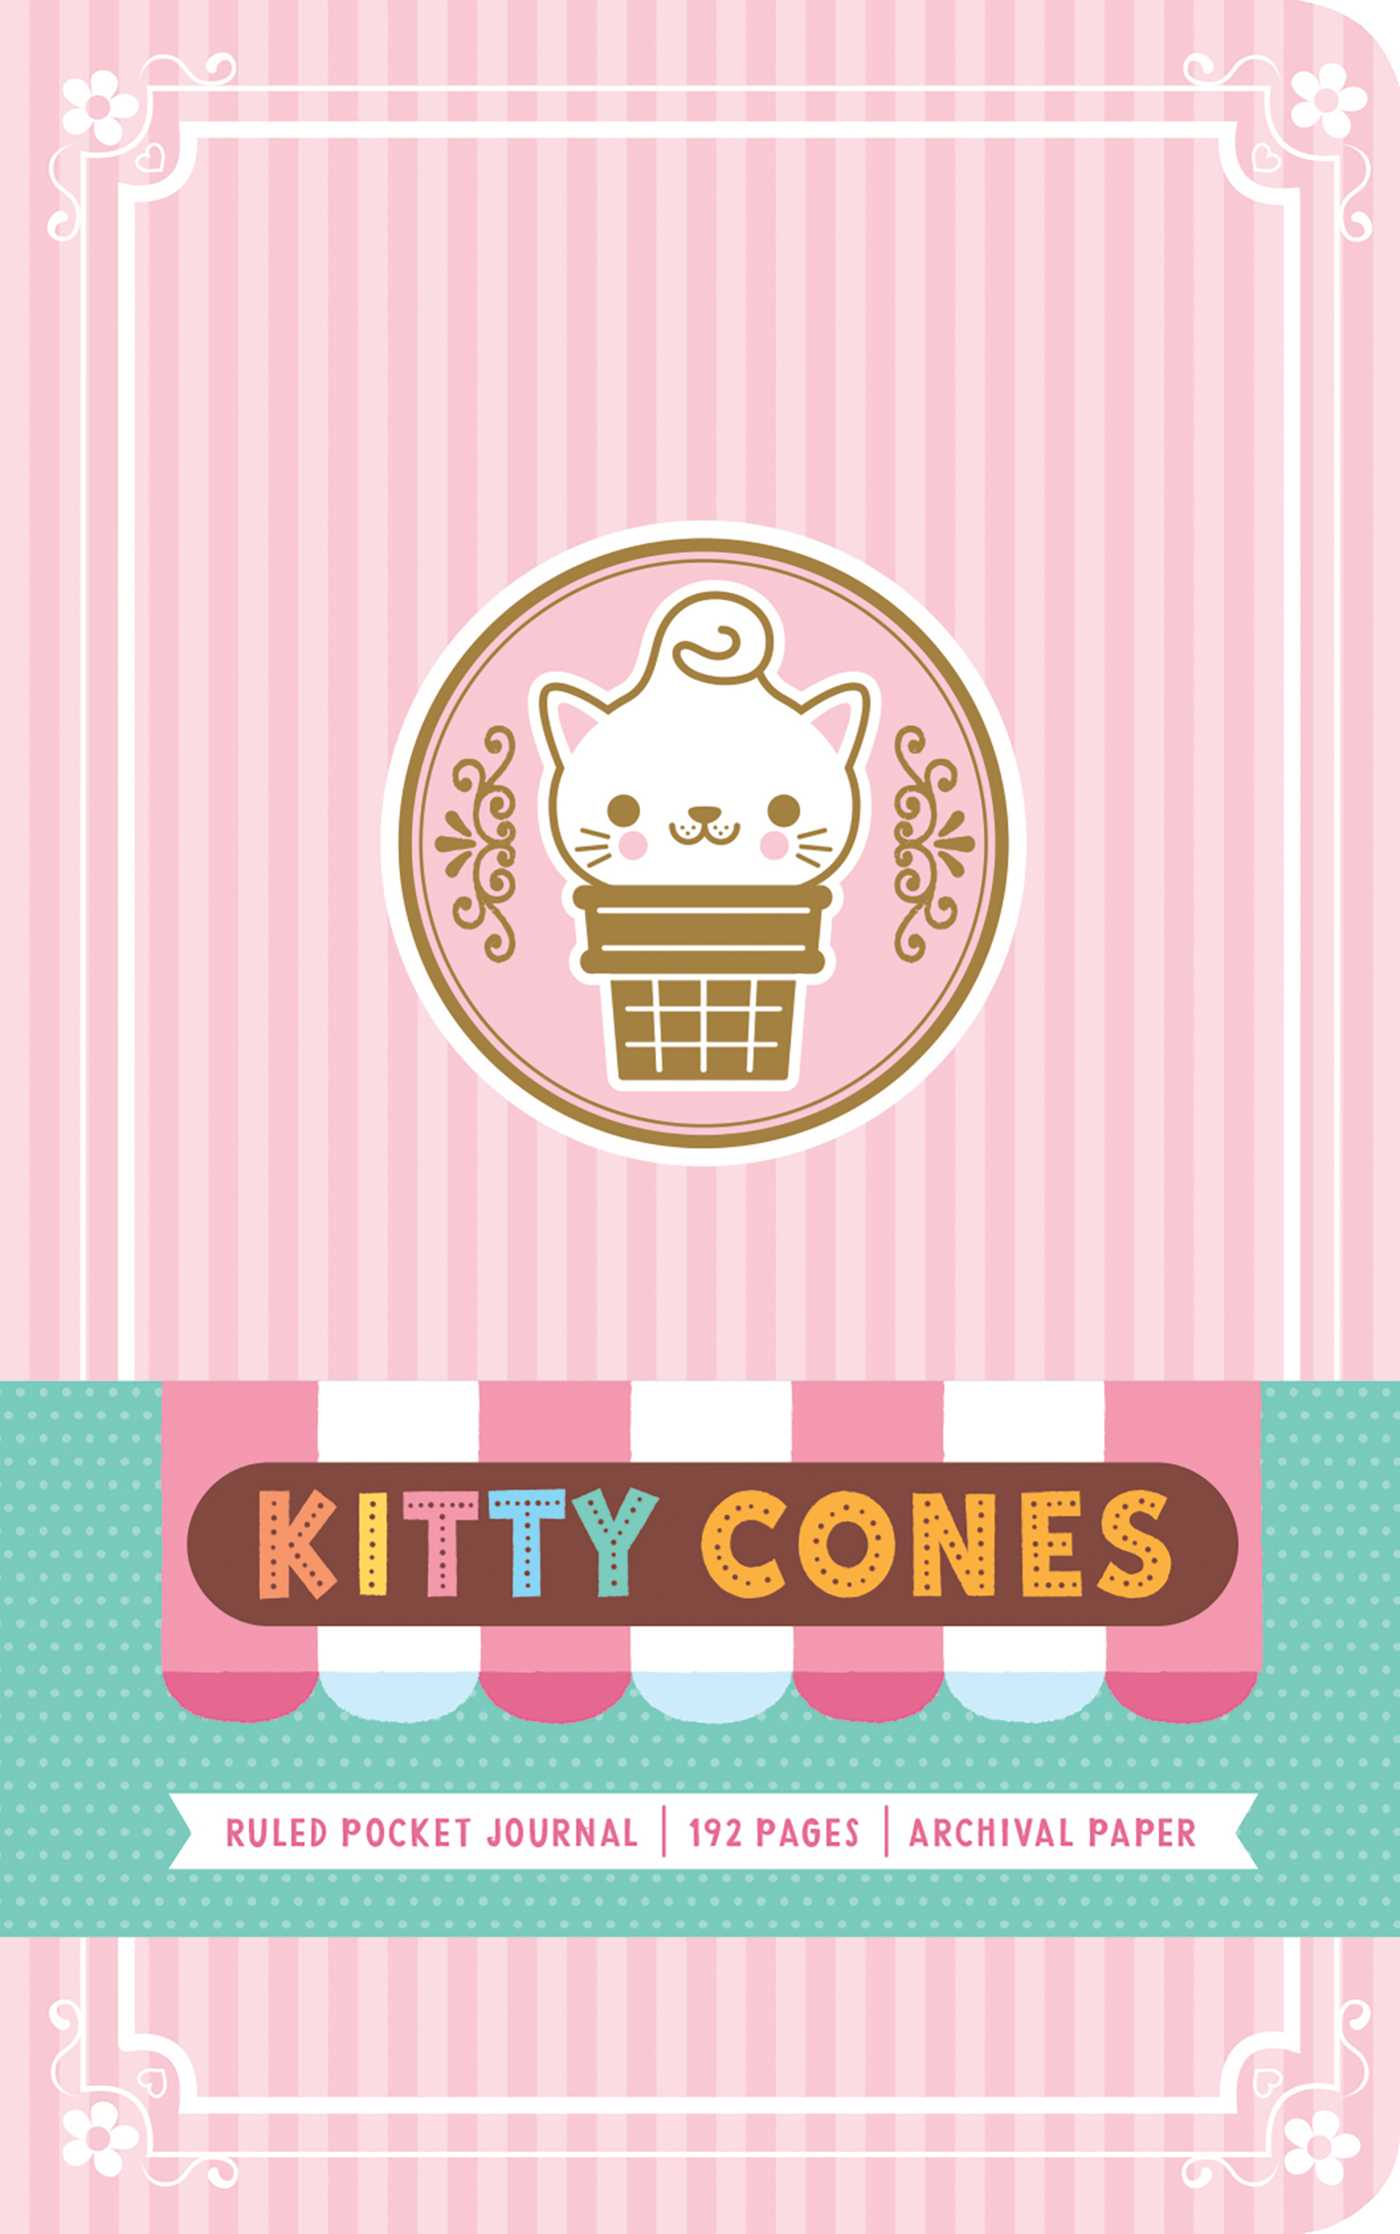 Kitty cones ruled pocket journal 9781683832386 hr